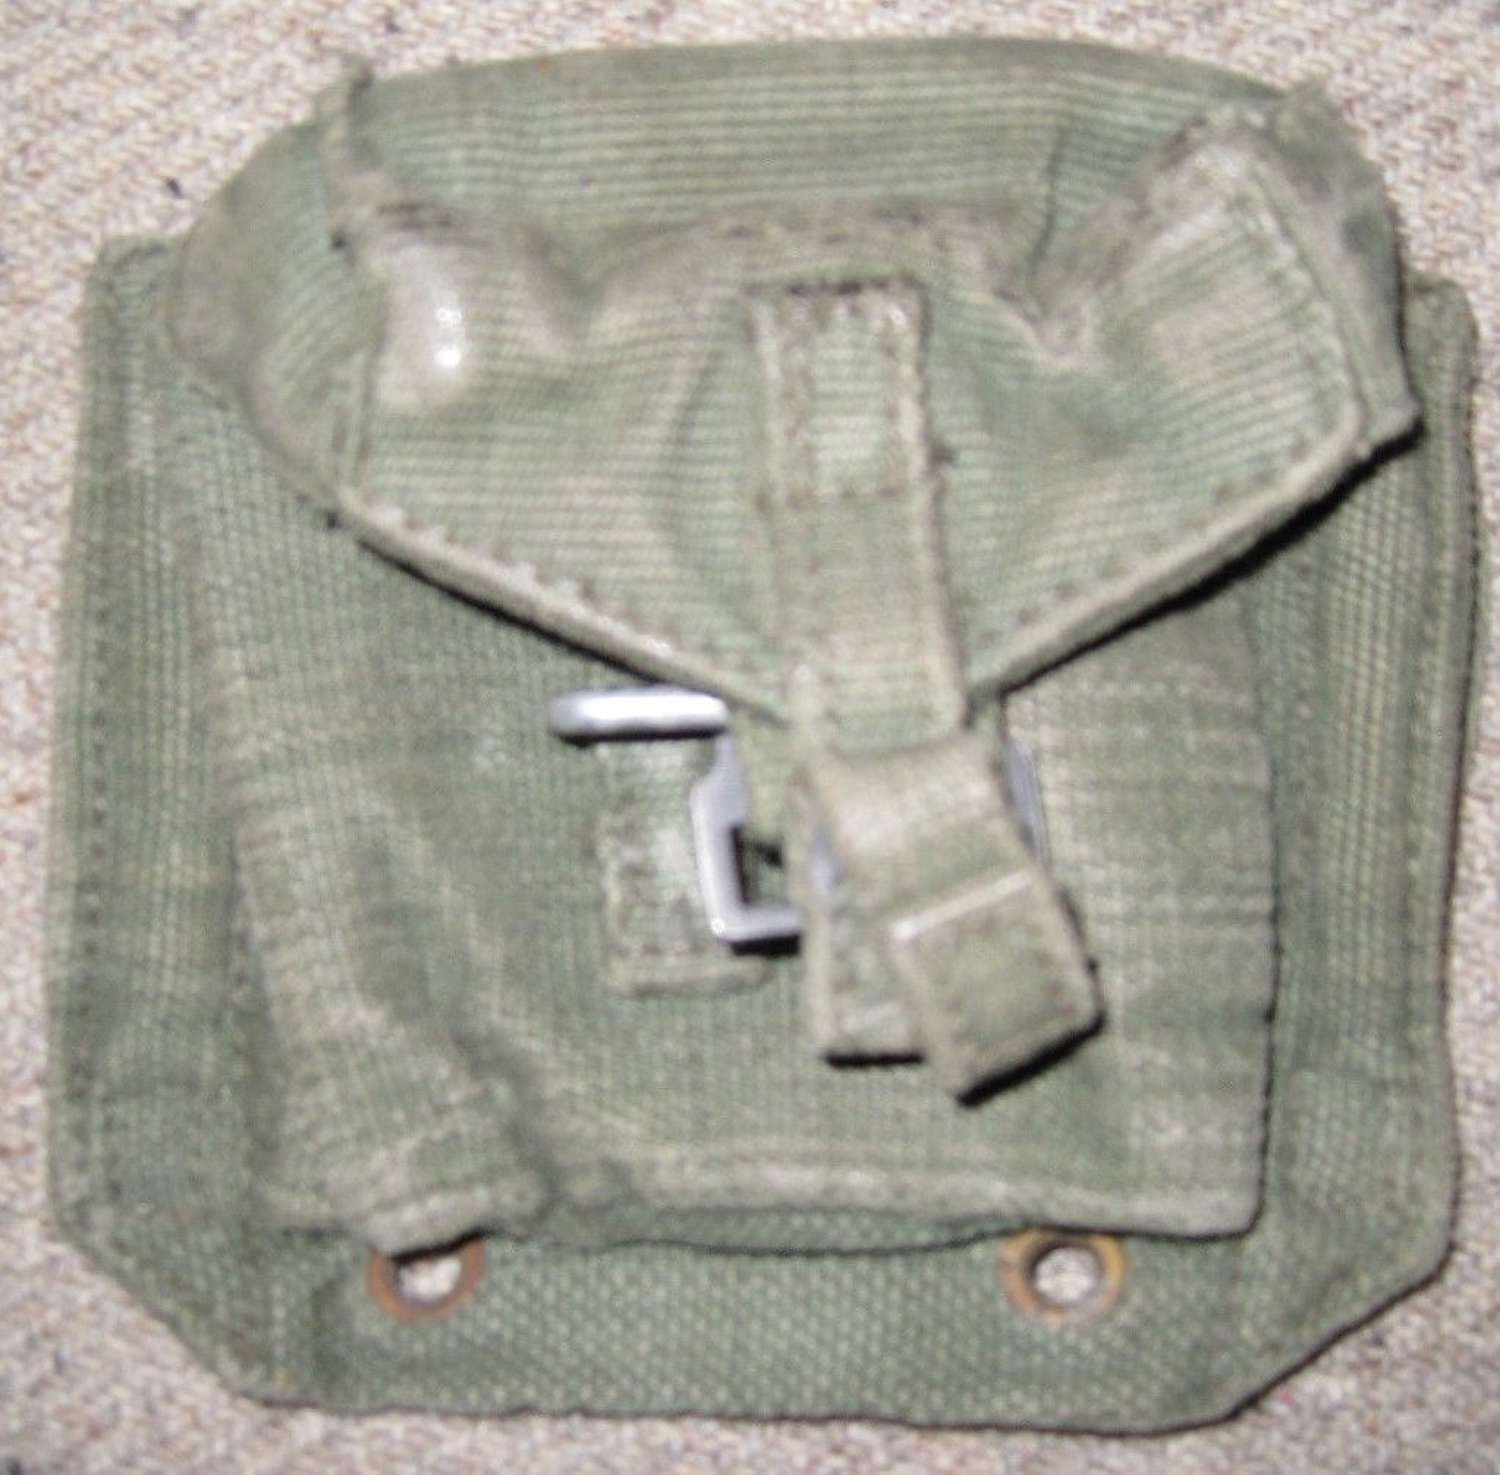 A 44 PATTERN WEBBING PISTOL AMMO POUCH 1950's DATED